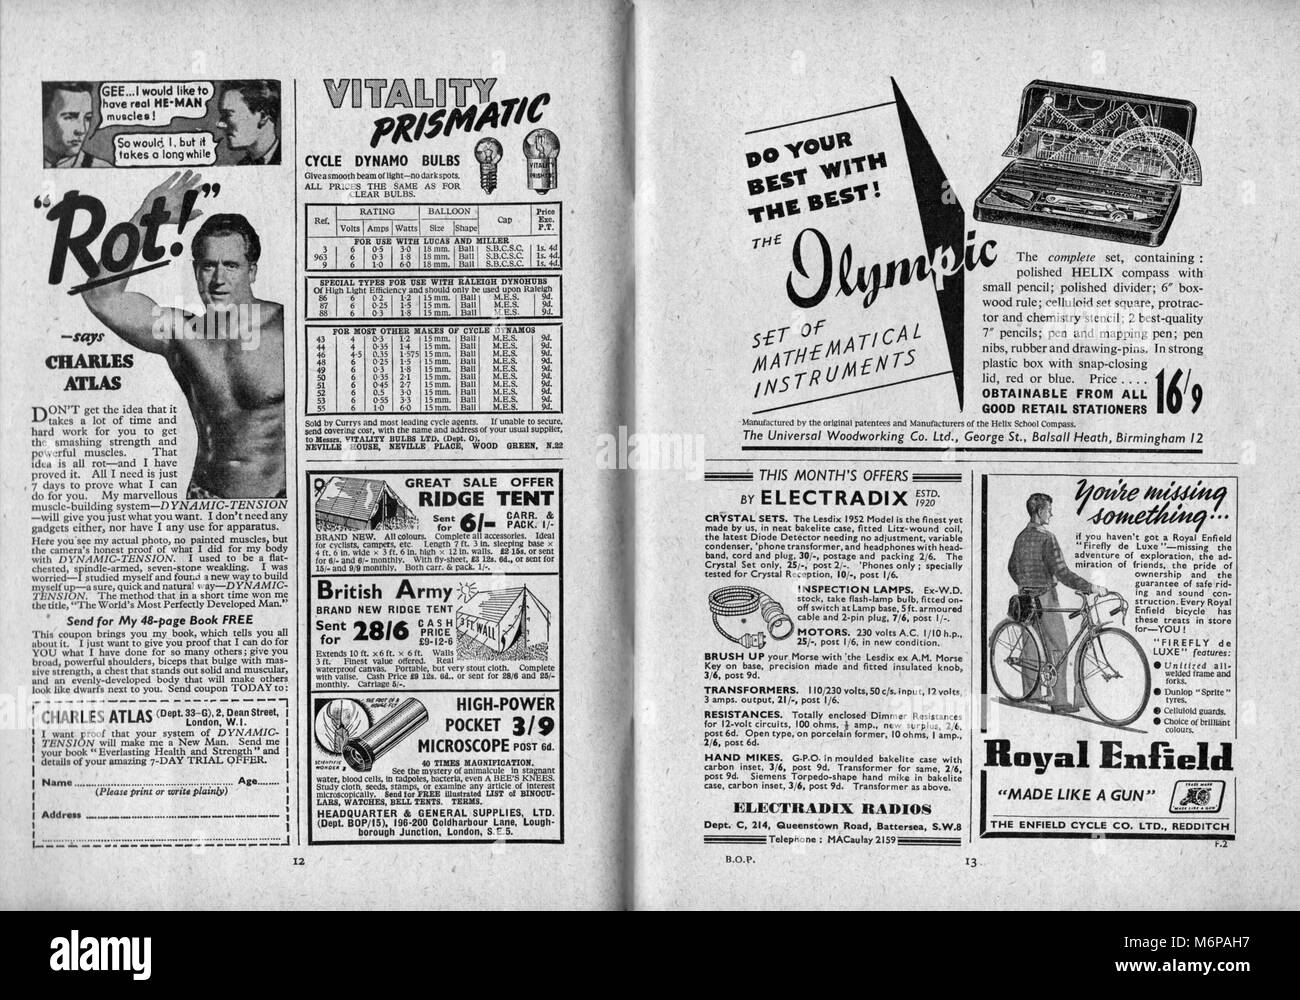 1950's adverts from the Boy's Own Paper. - Stock Image